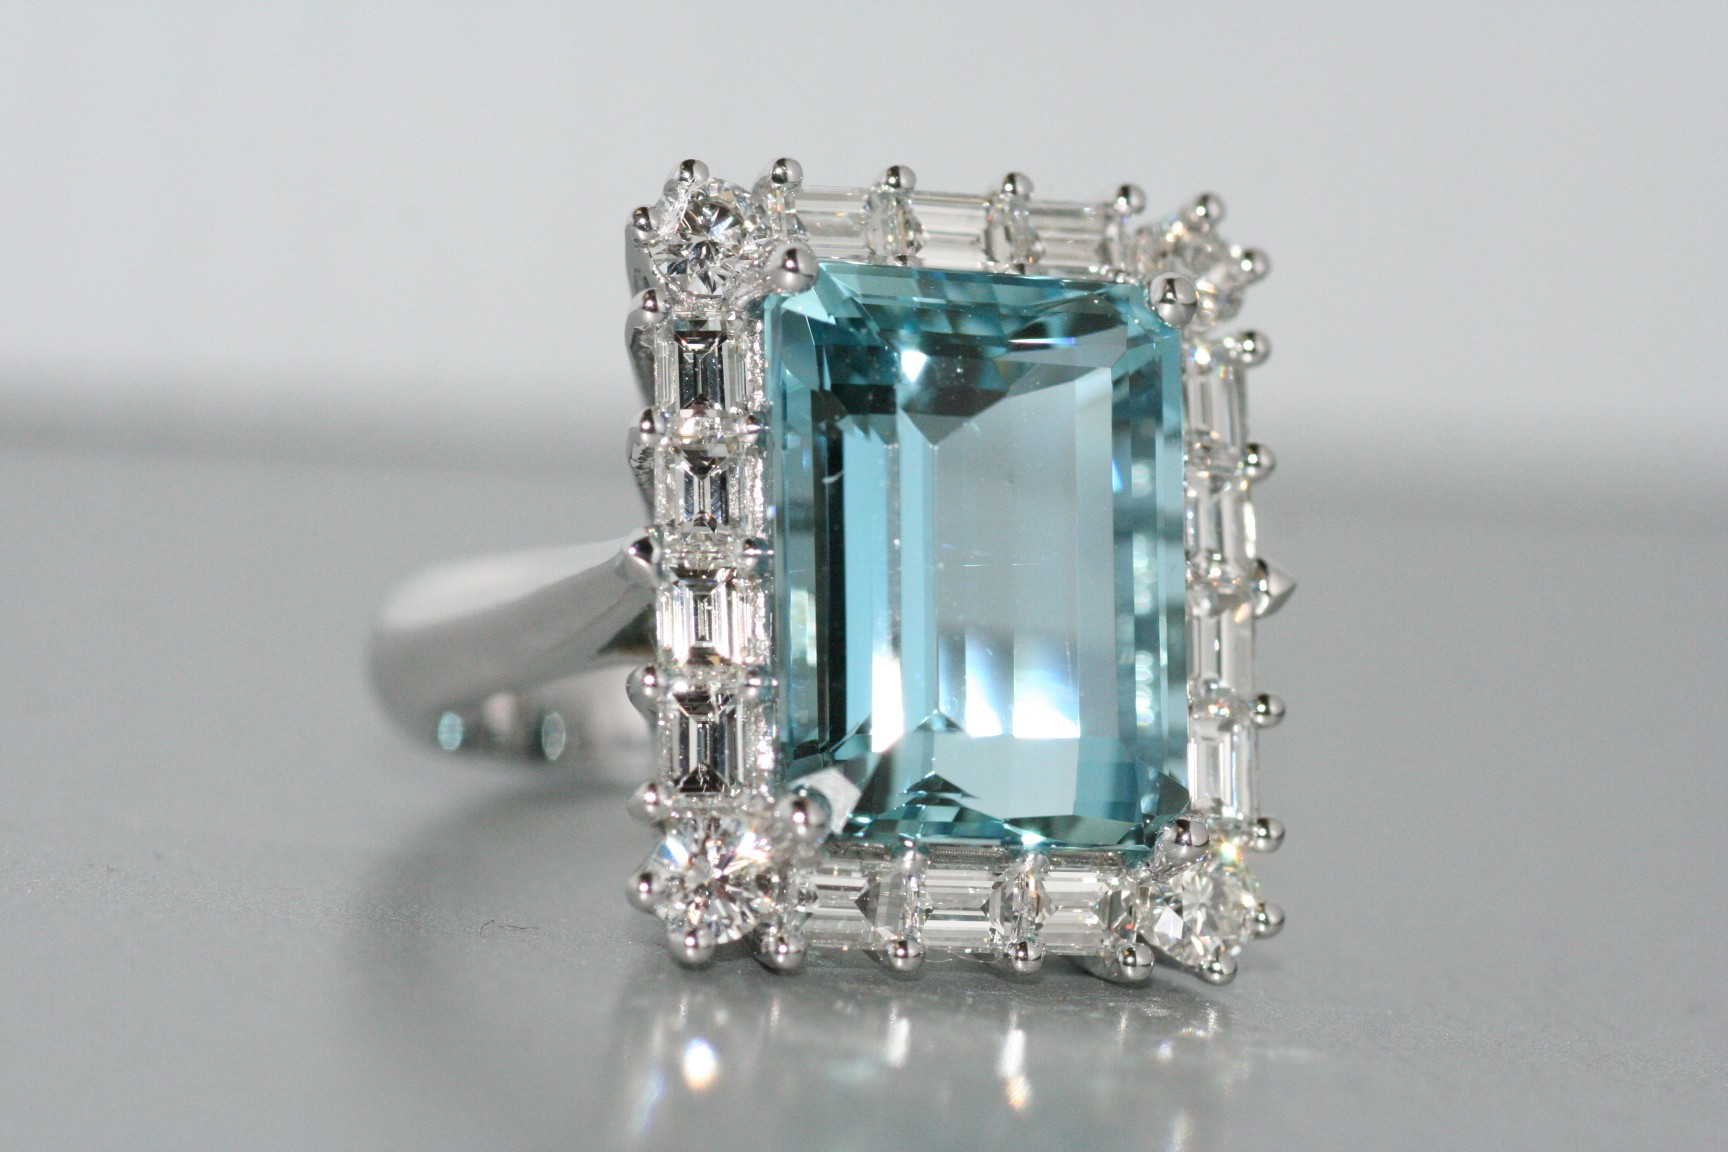 Handmade Aquamarine and diamond ring.